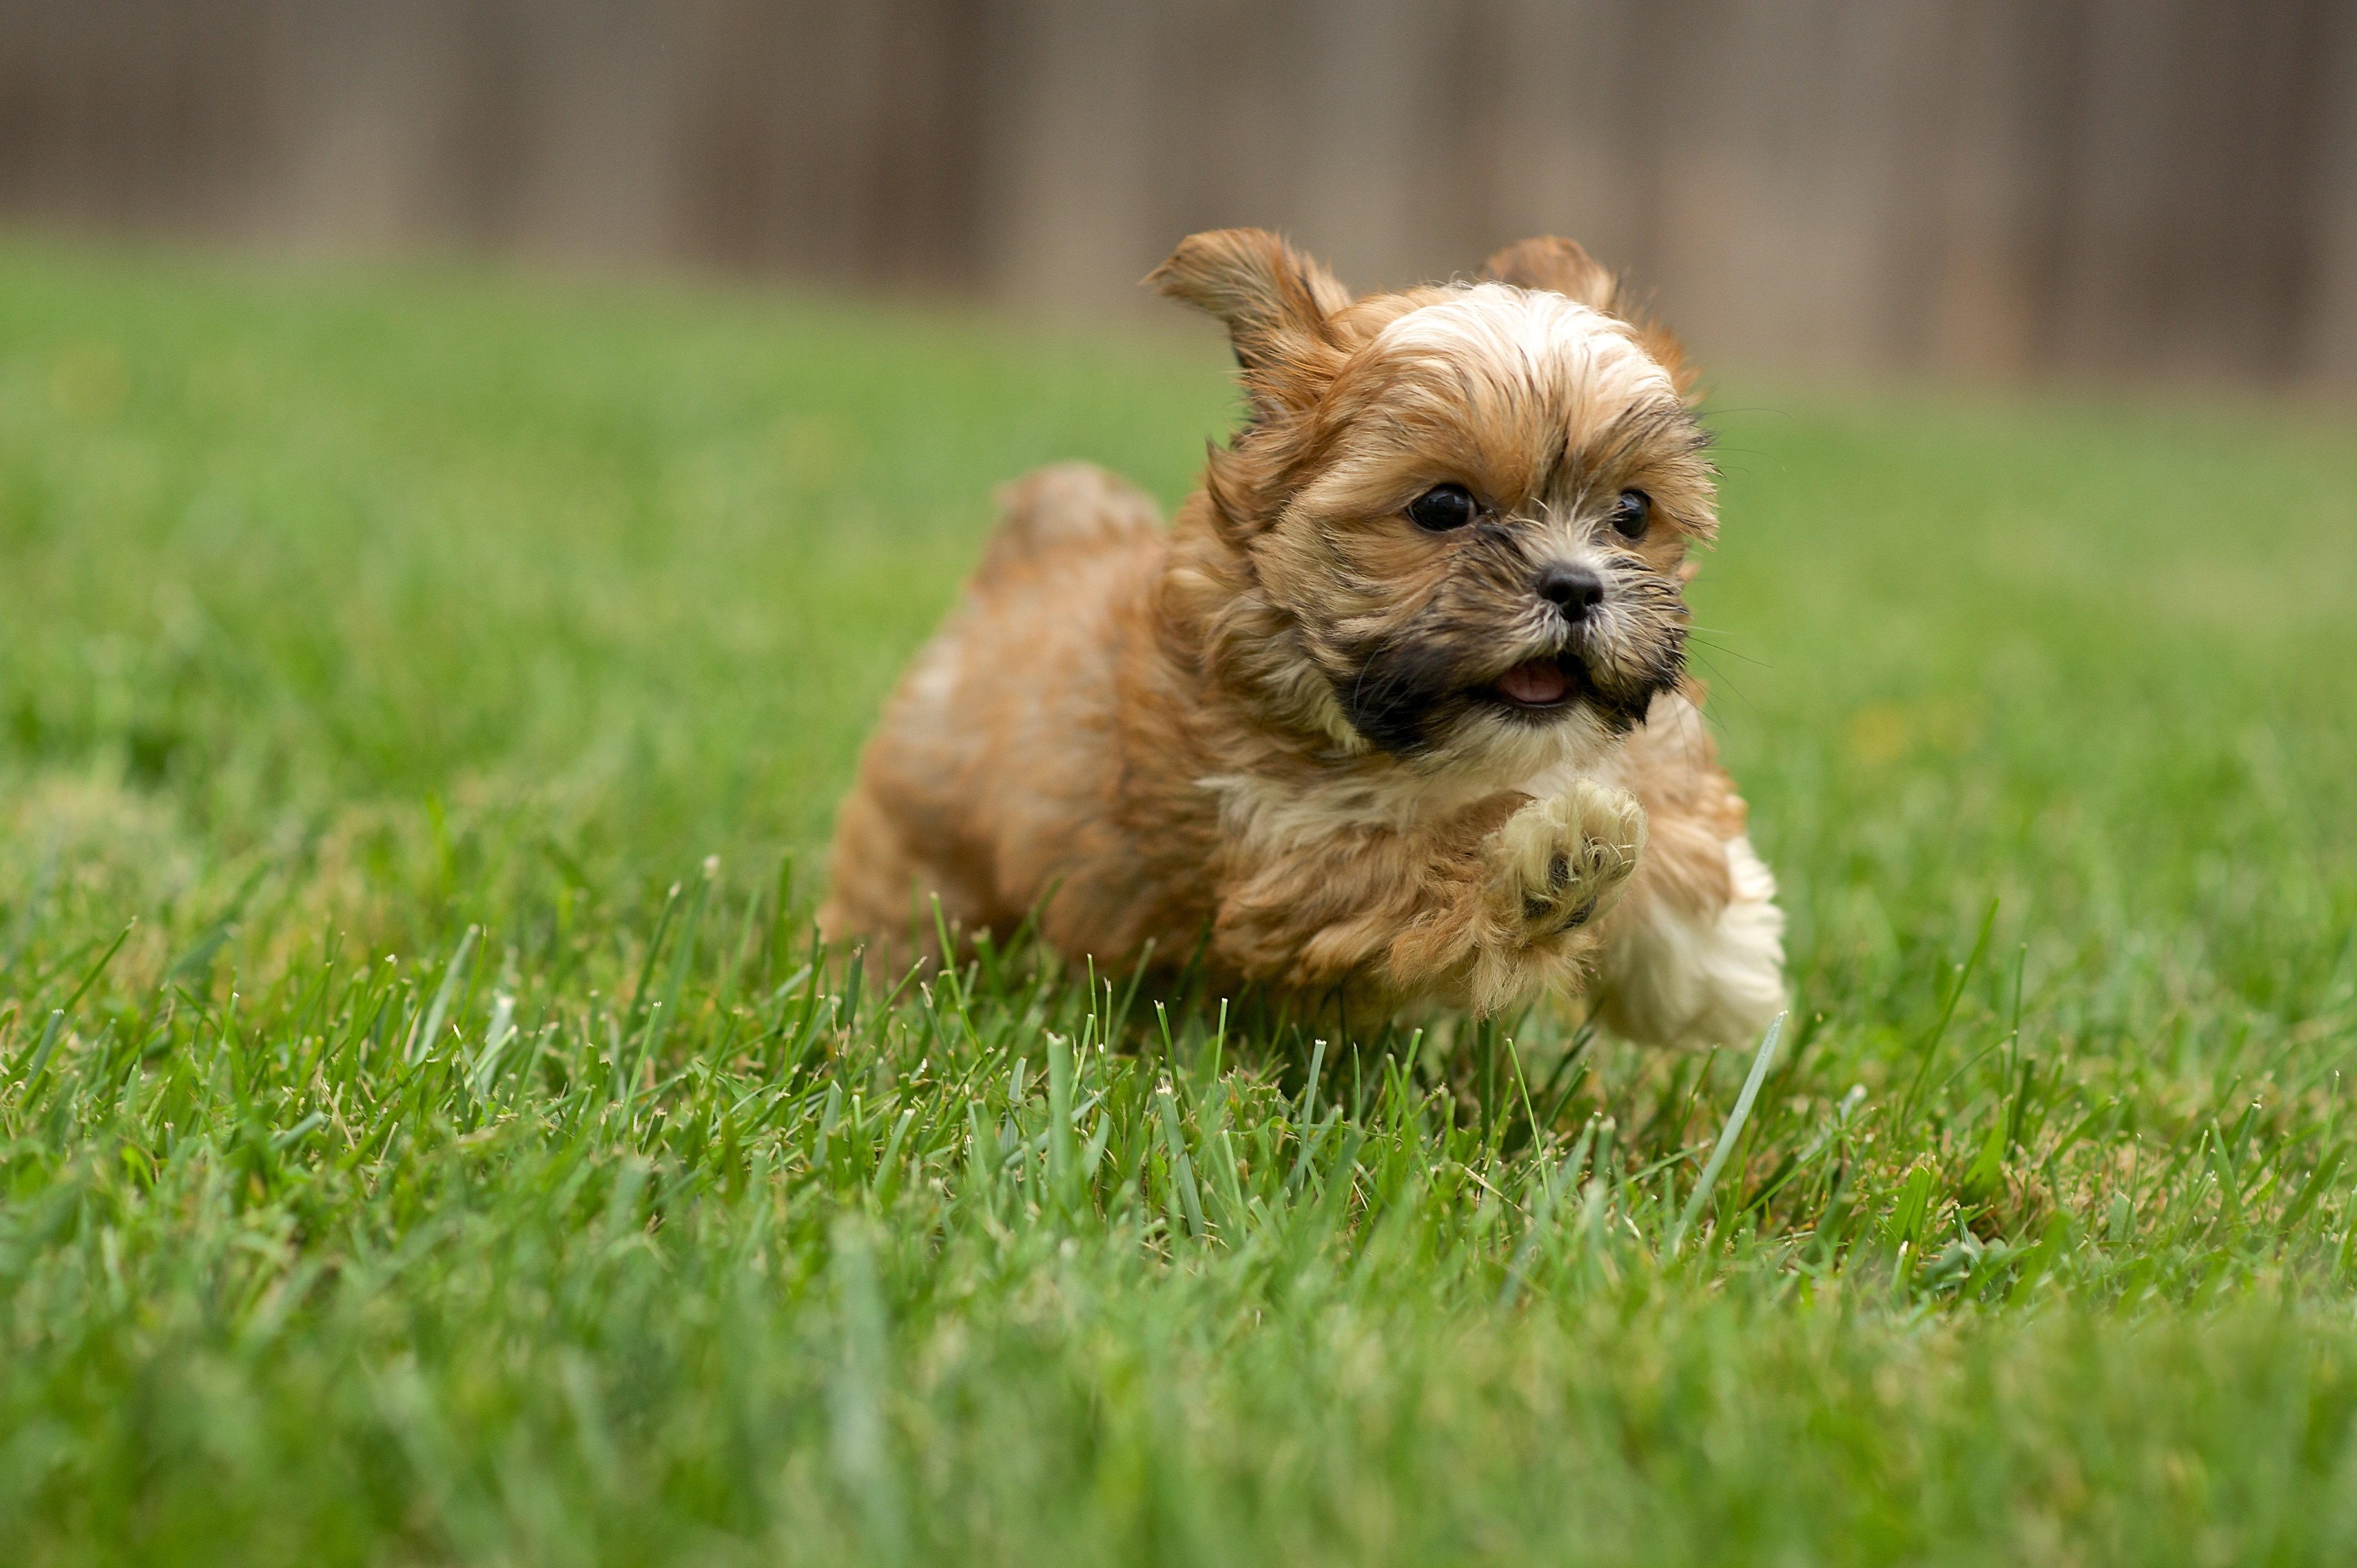 Shorkie Mixed Dog Breed Pictures